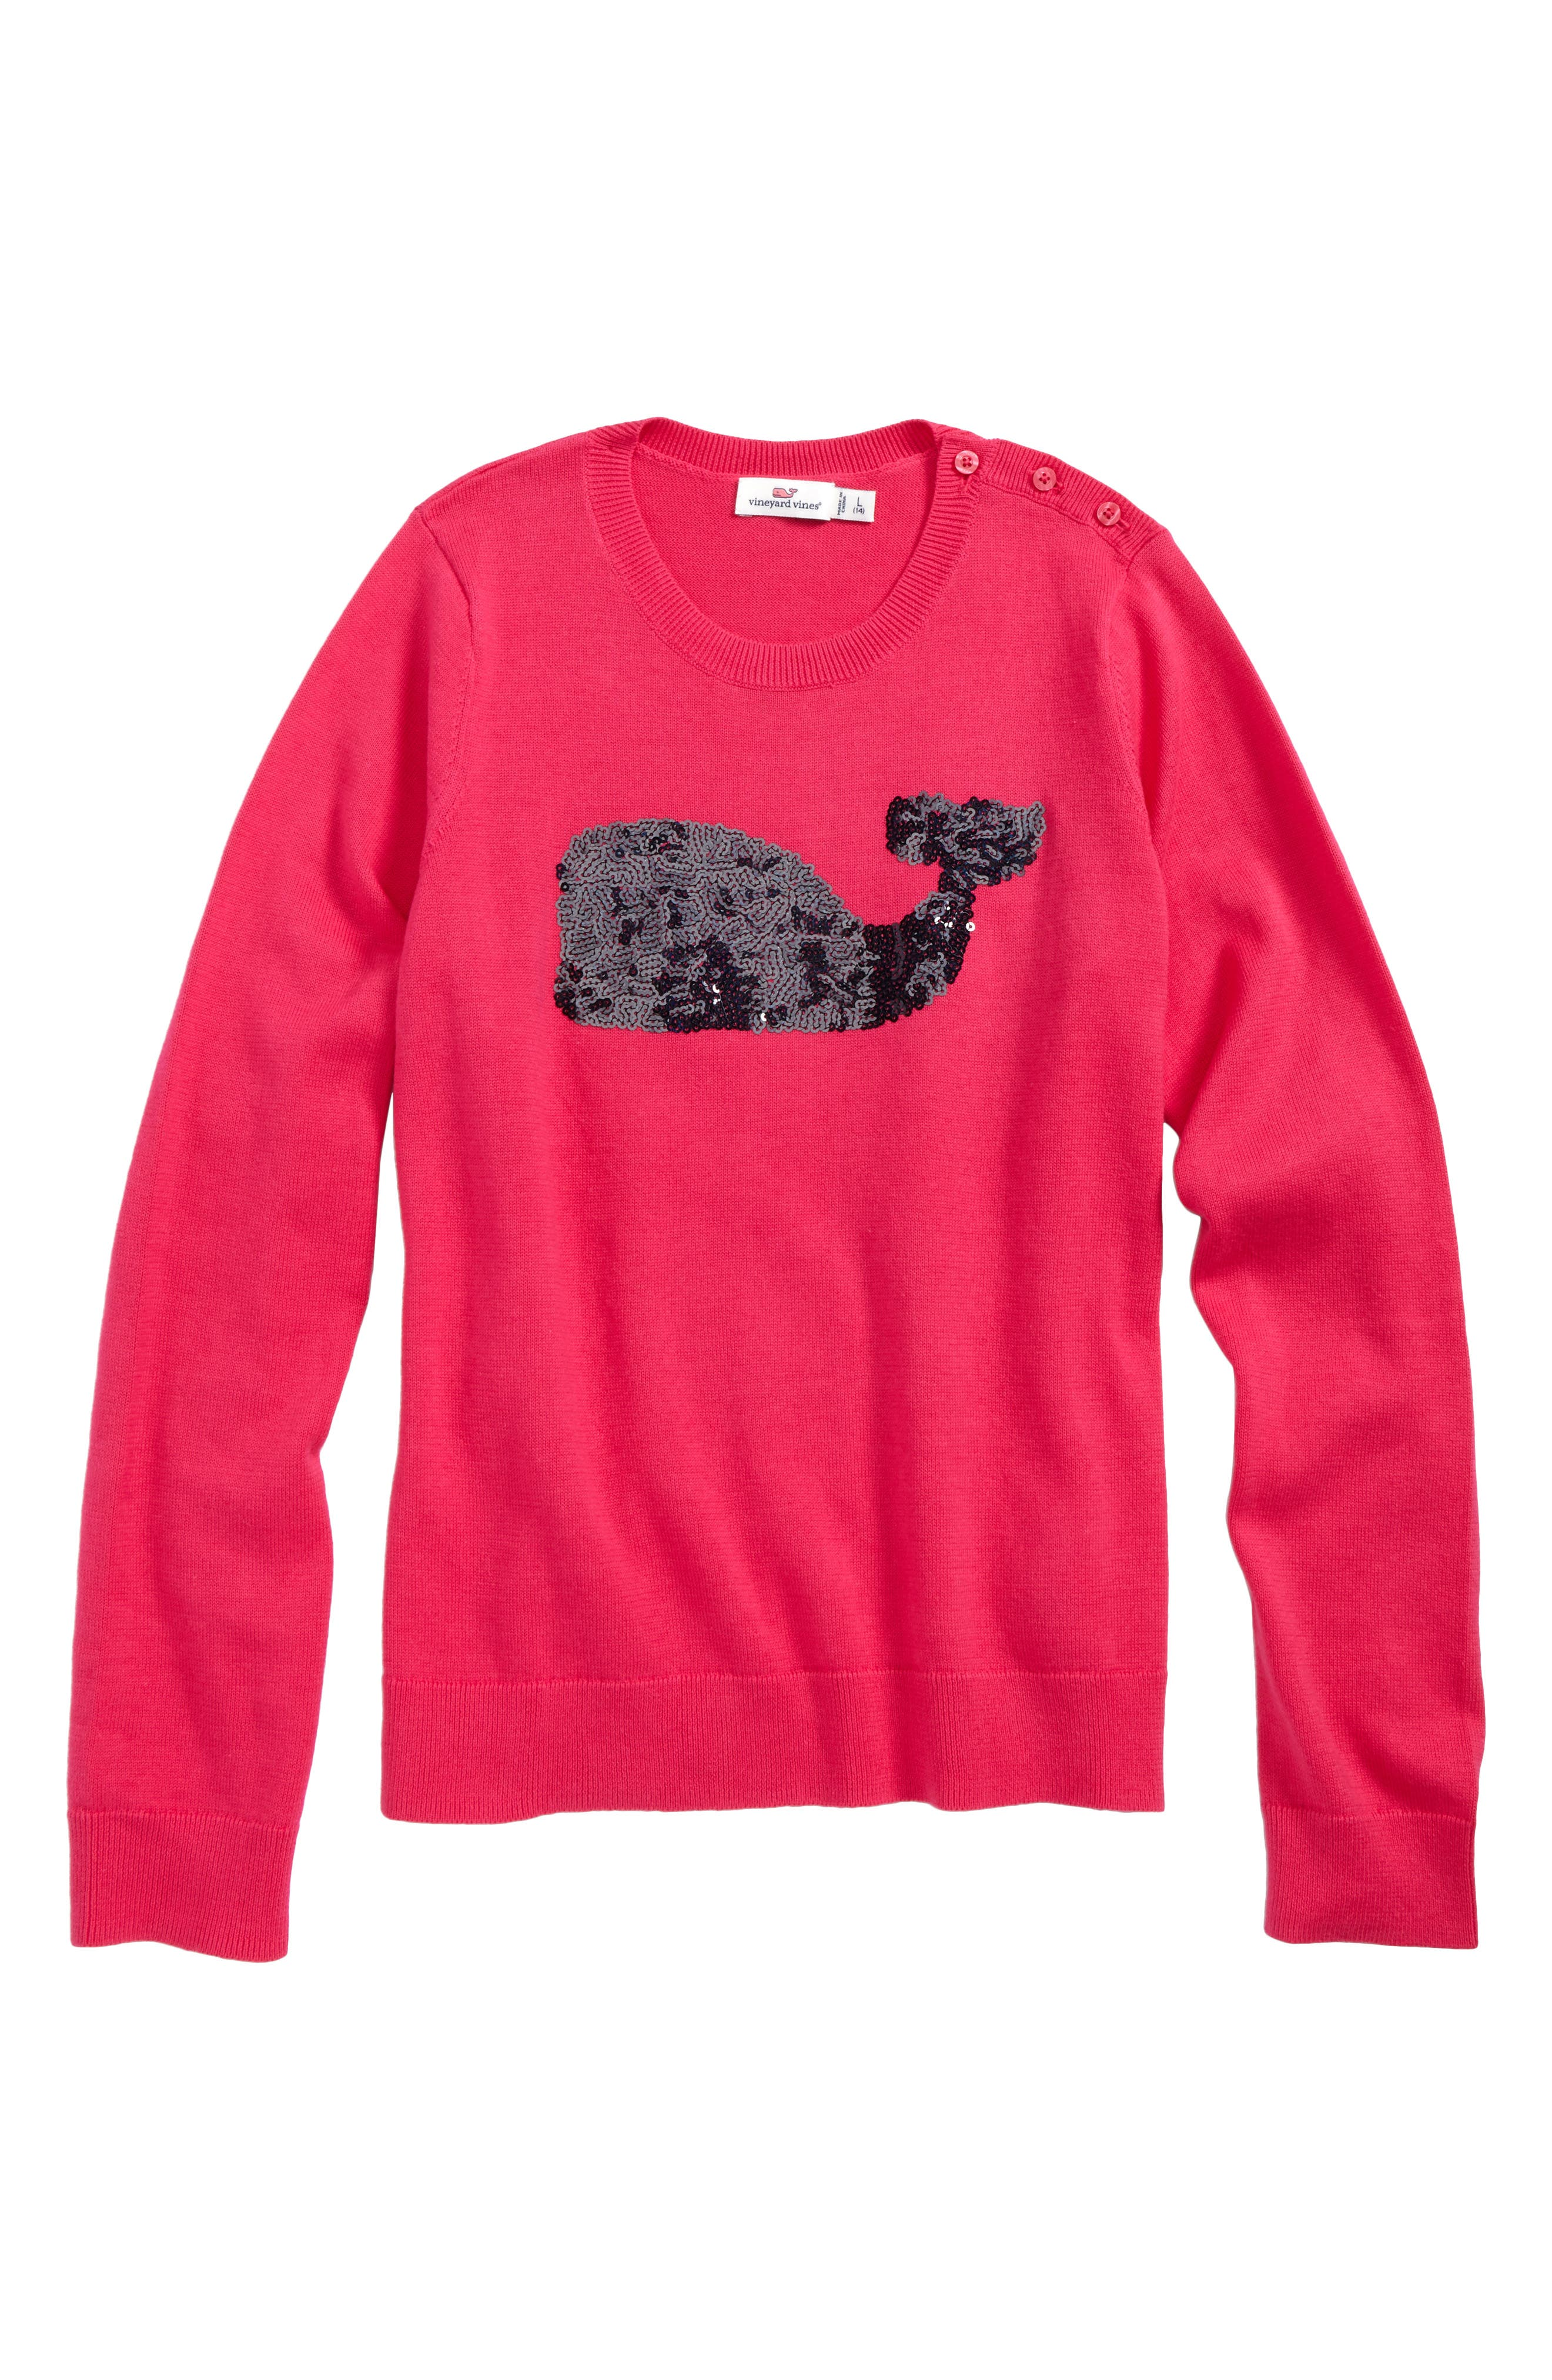 VINEYARD VINES Sequin Whale Sweater, Main, color, 658